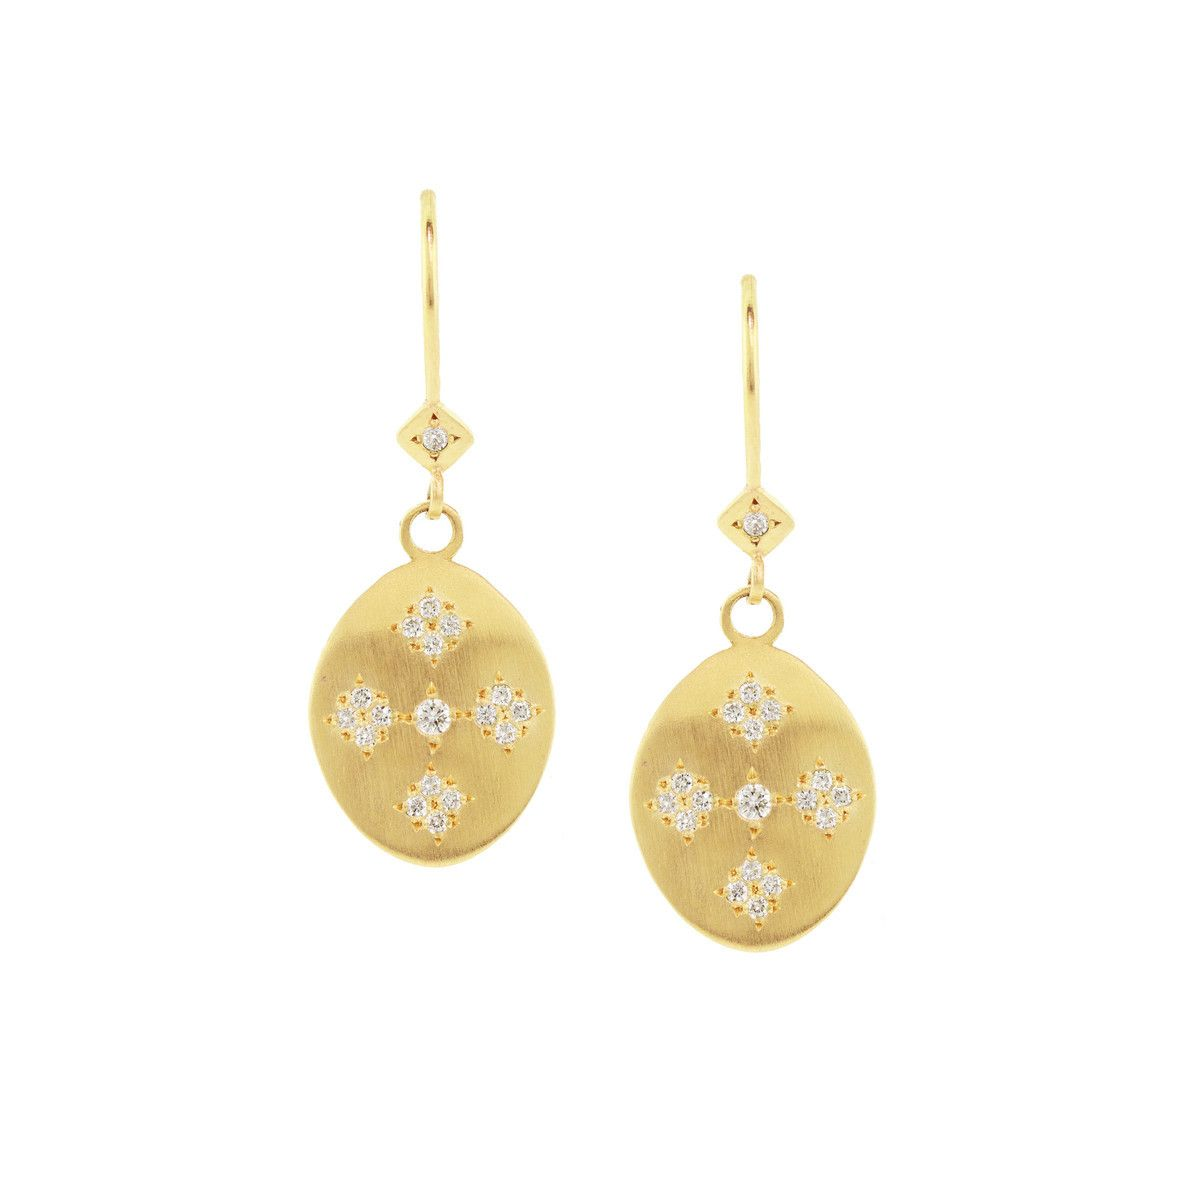 Earrings | Adel Chefridi Studio